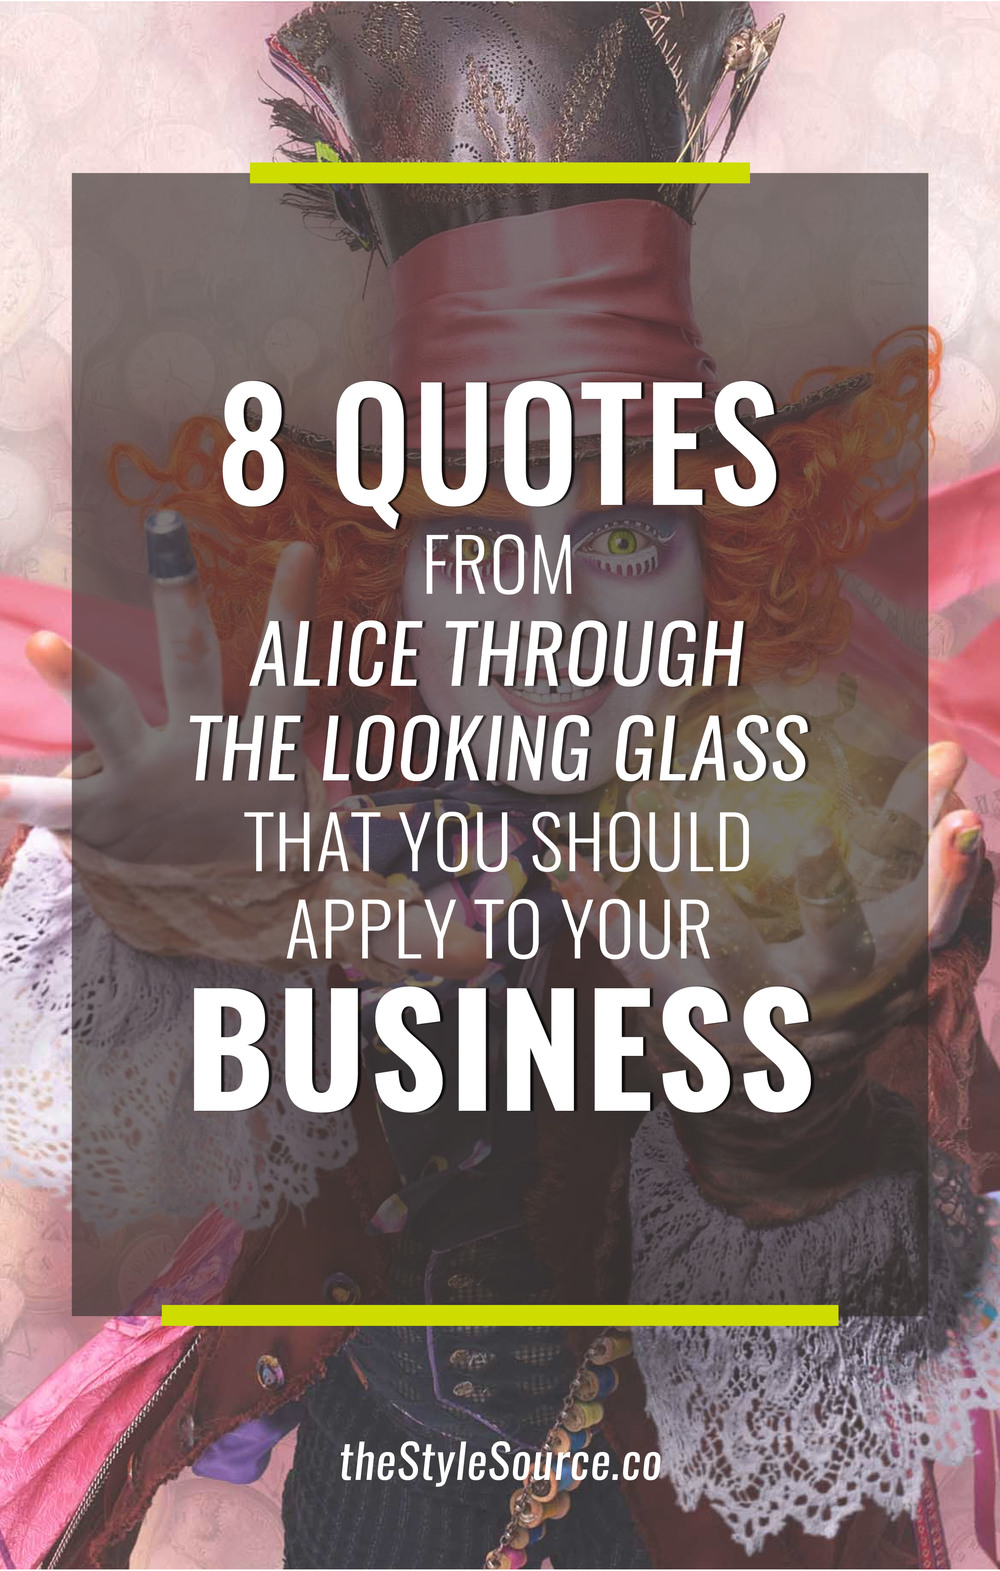 Through The Looking Glass Quotes Simple 8 Quotes From Alice Through The Looking Glass That You Should